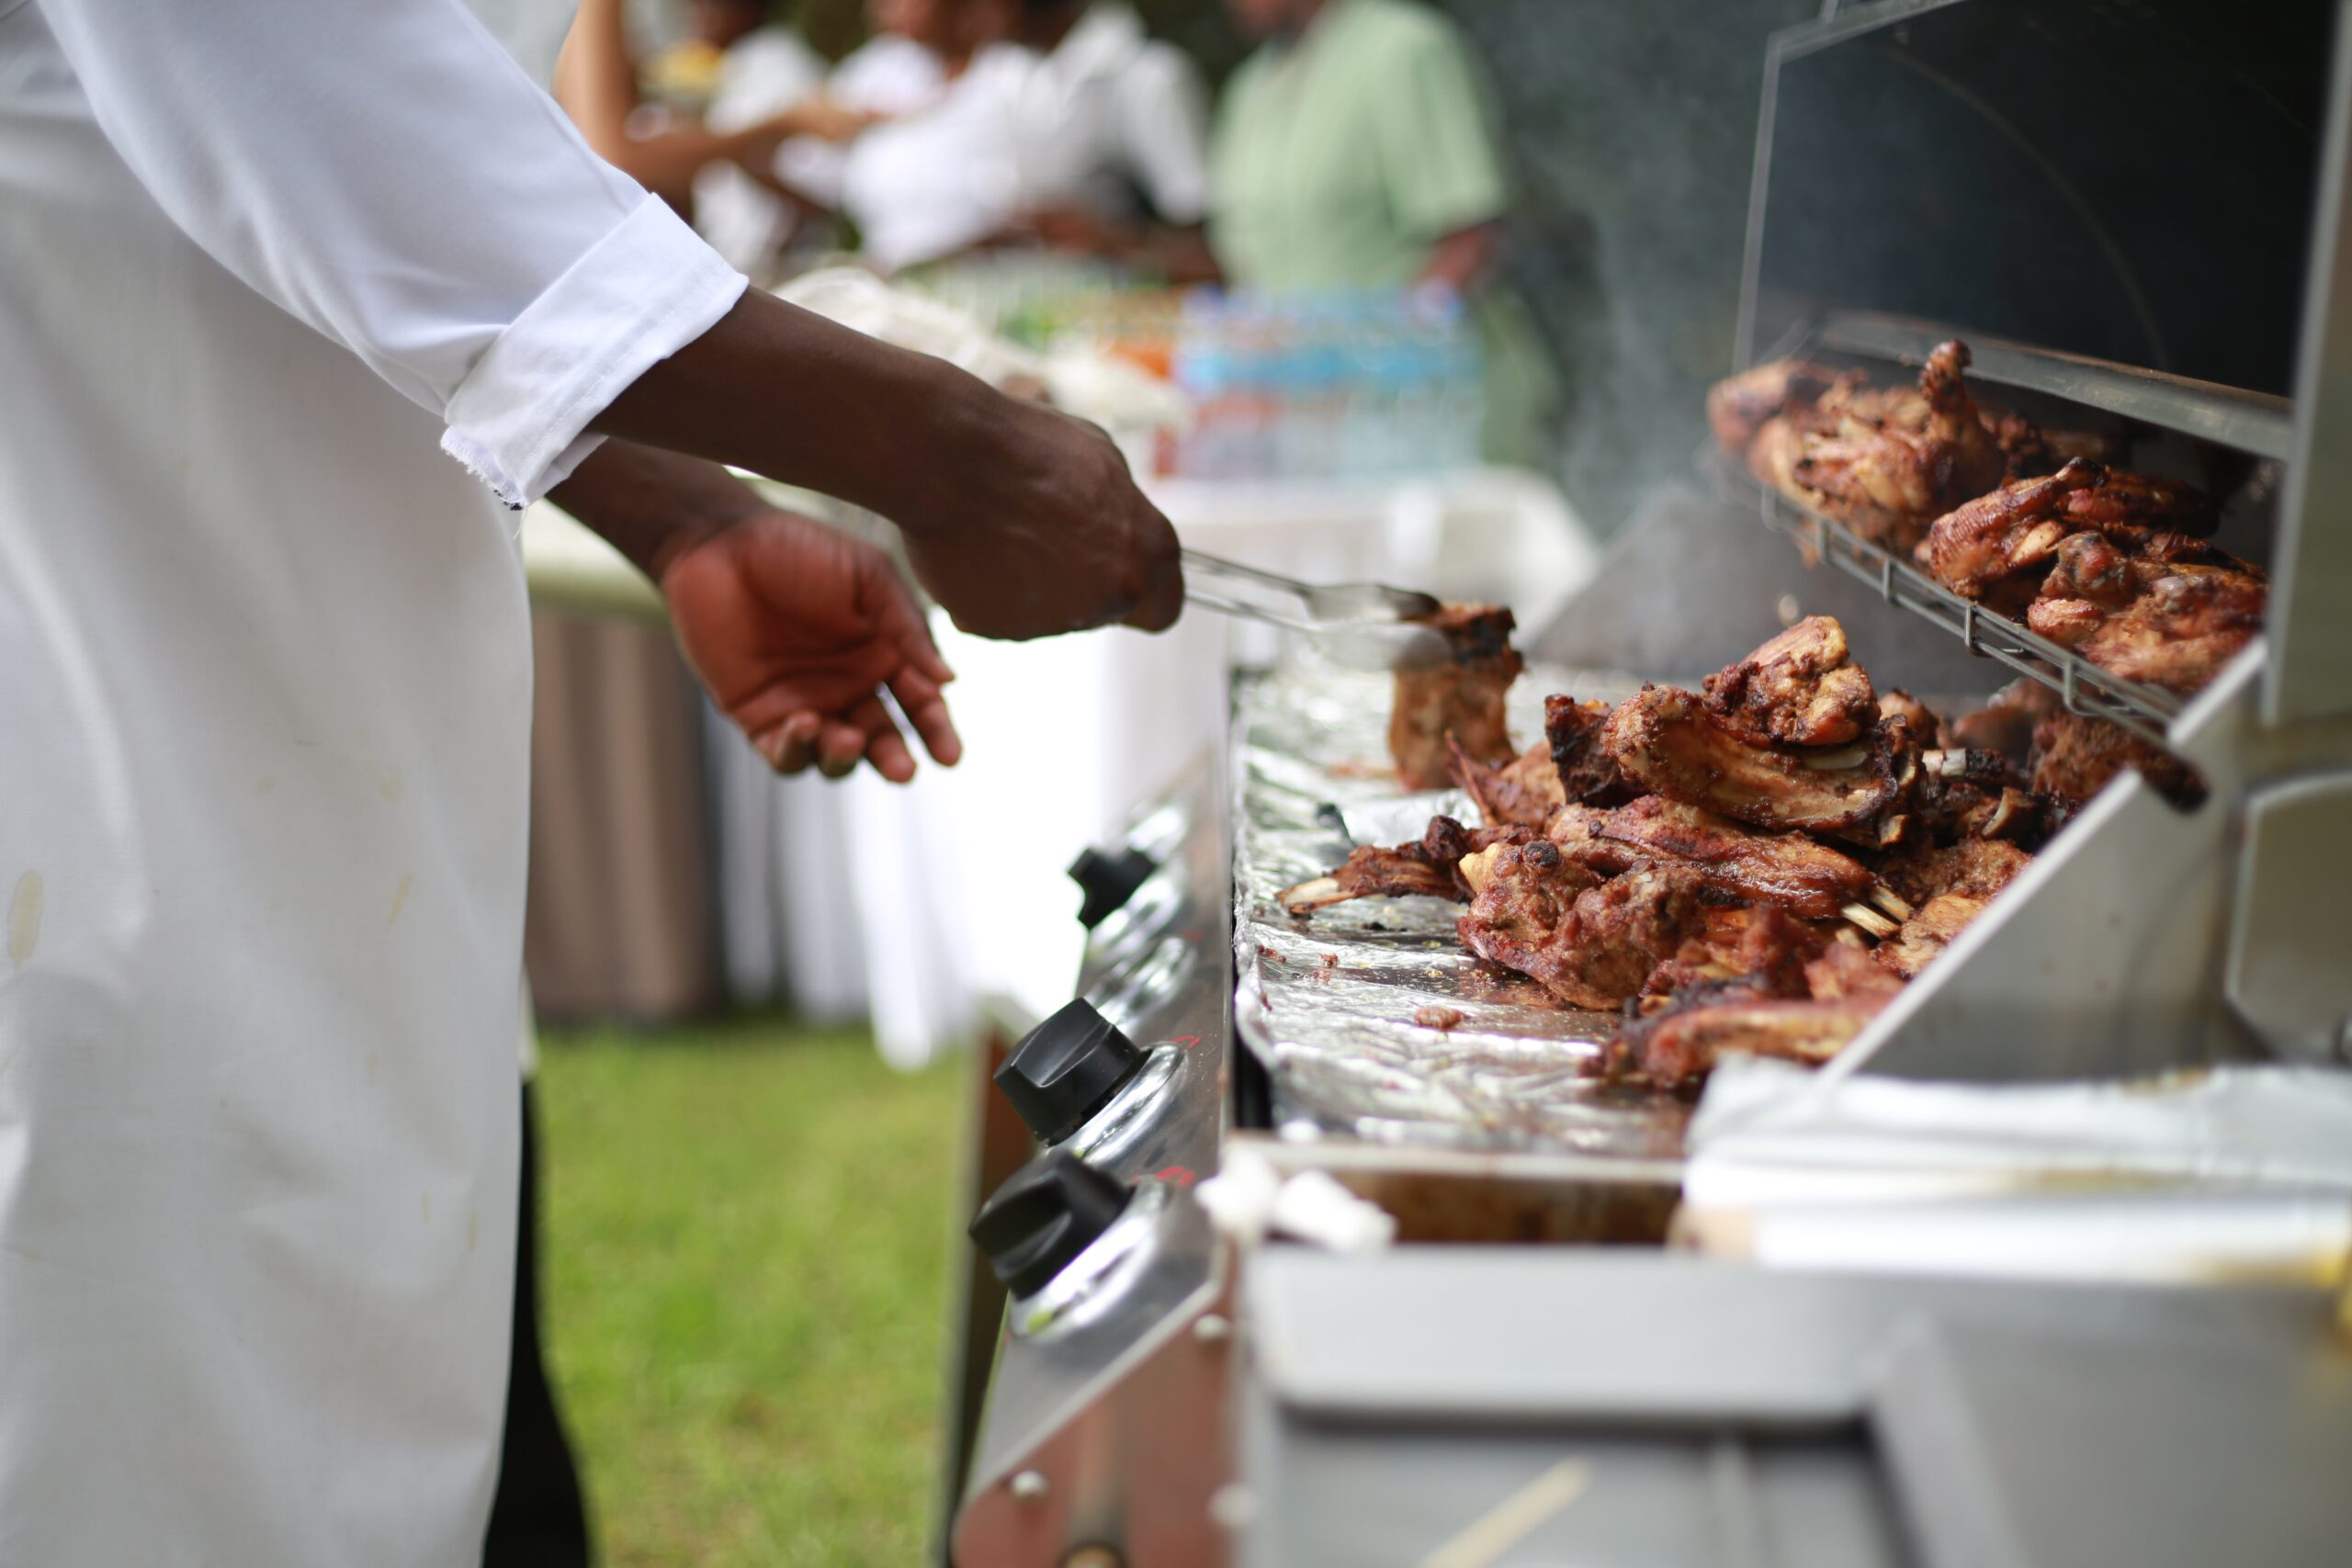 Grill chef needed